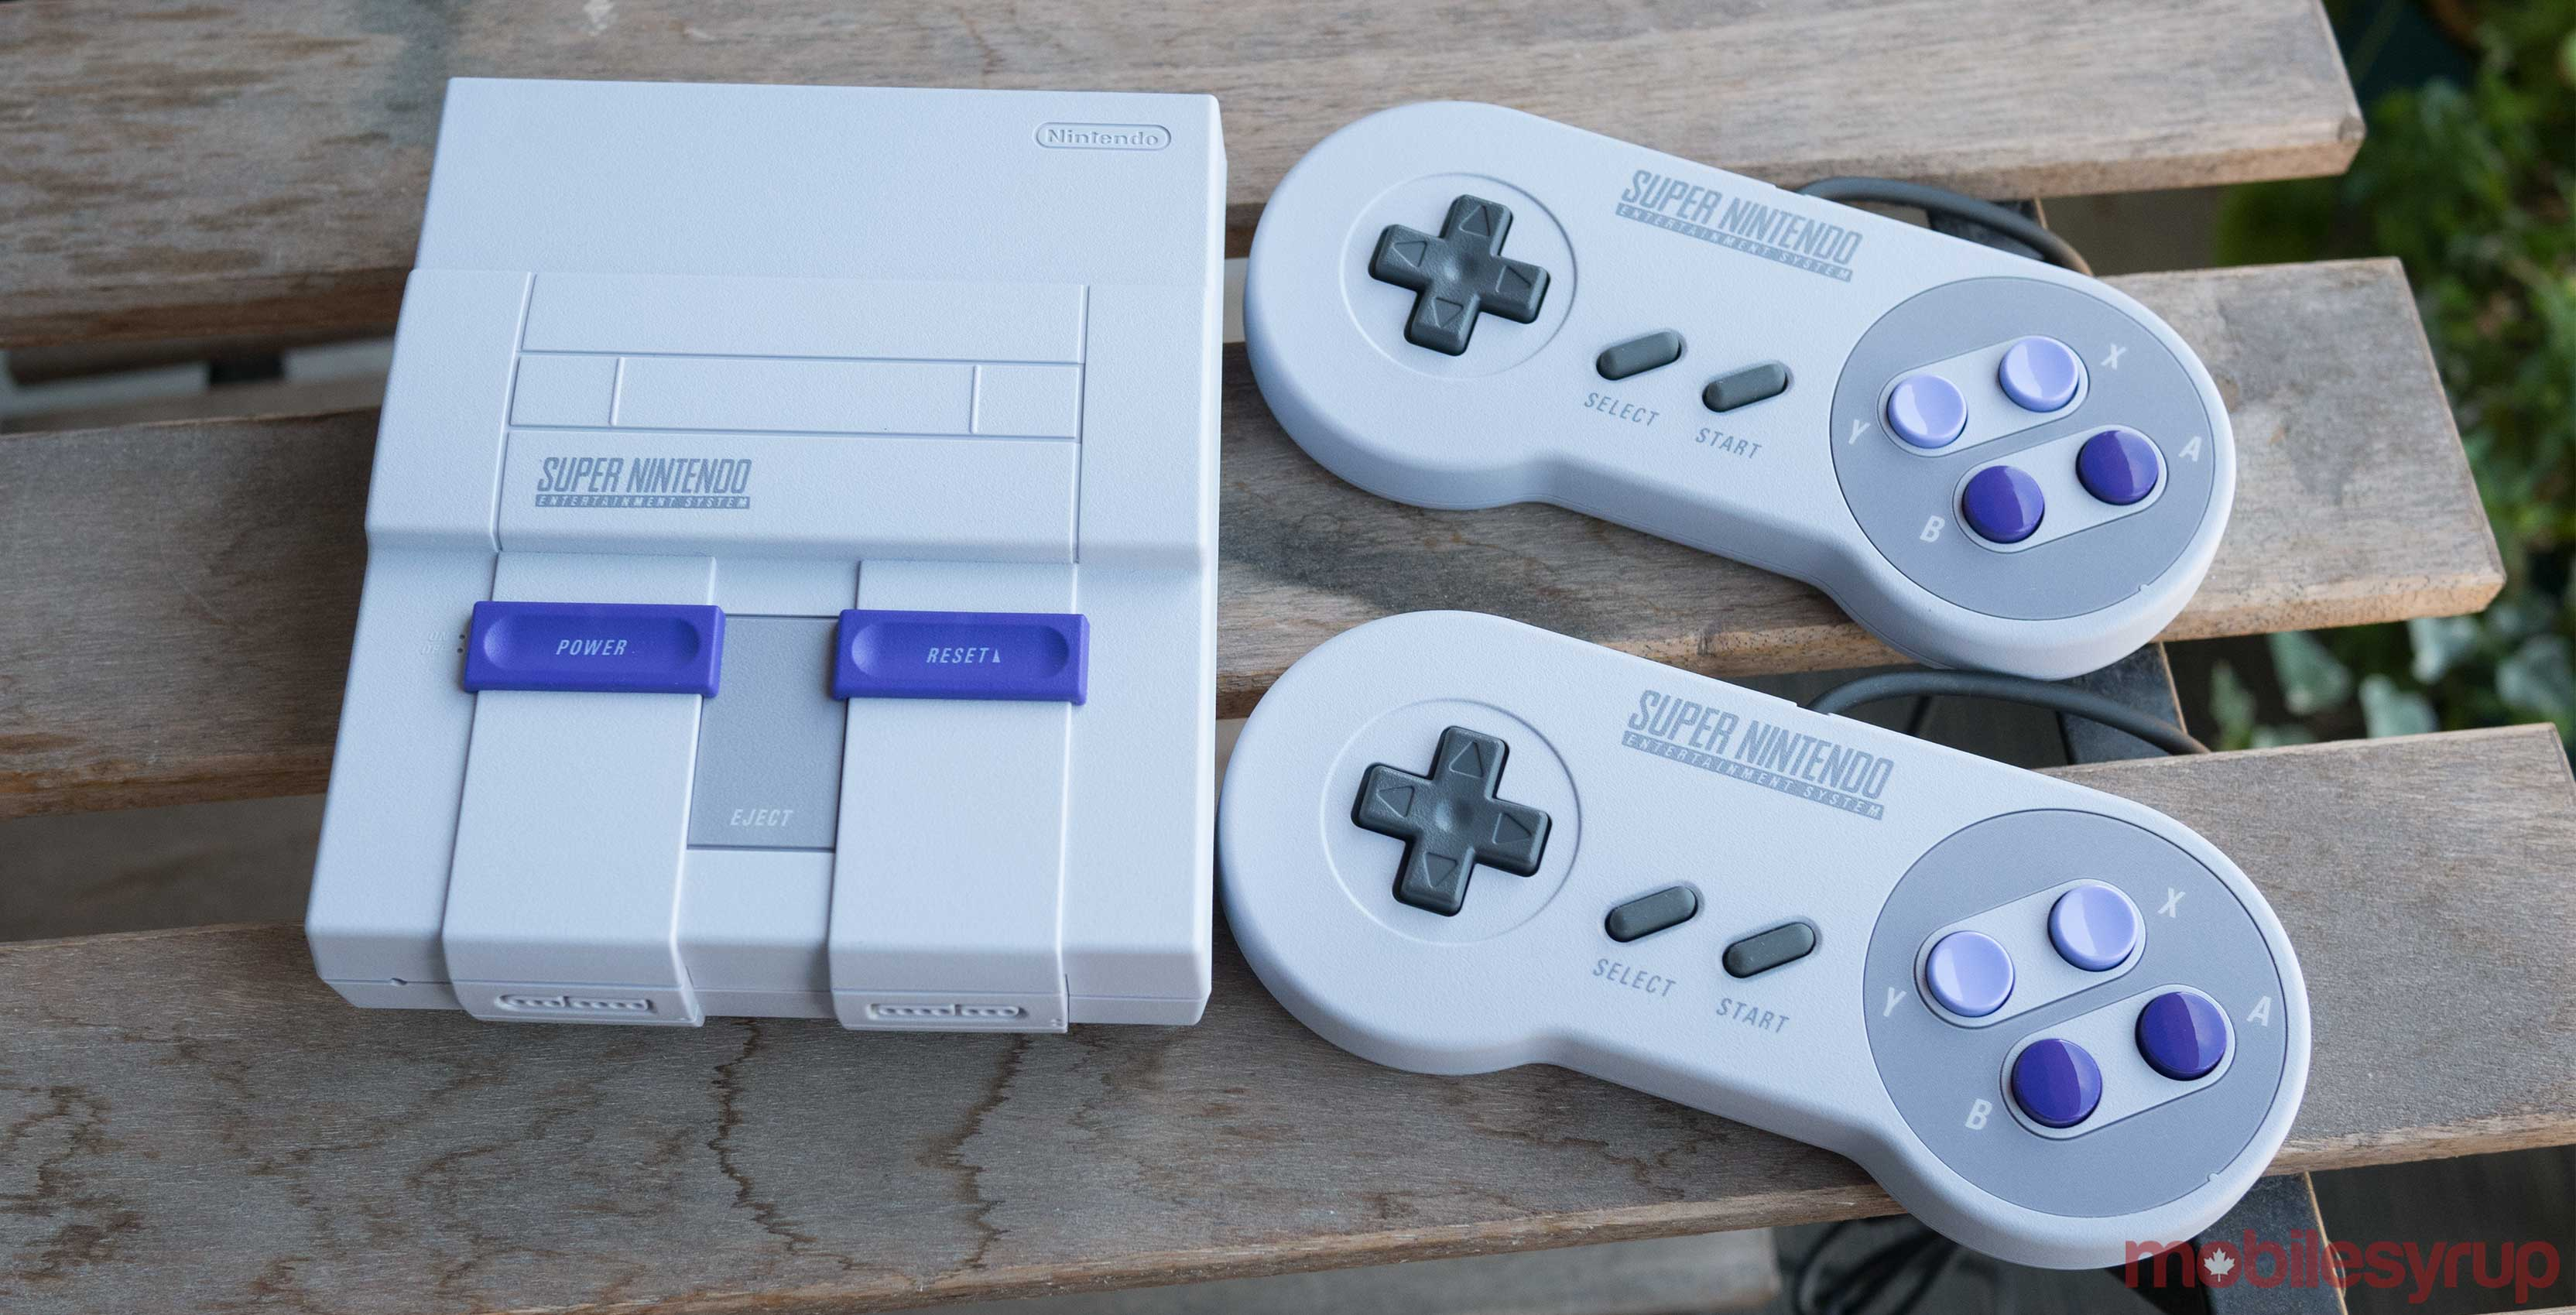 SNES Classic with two controllers